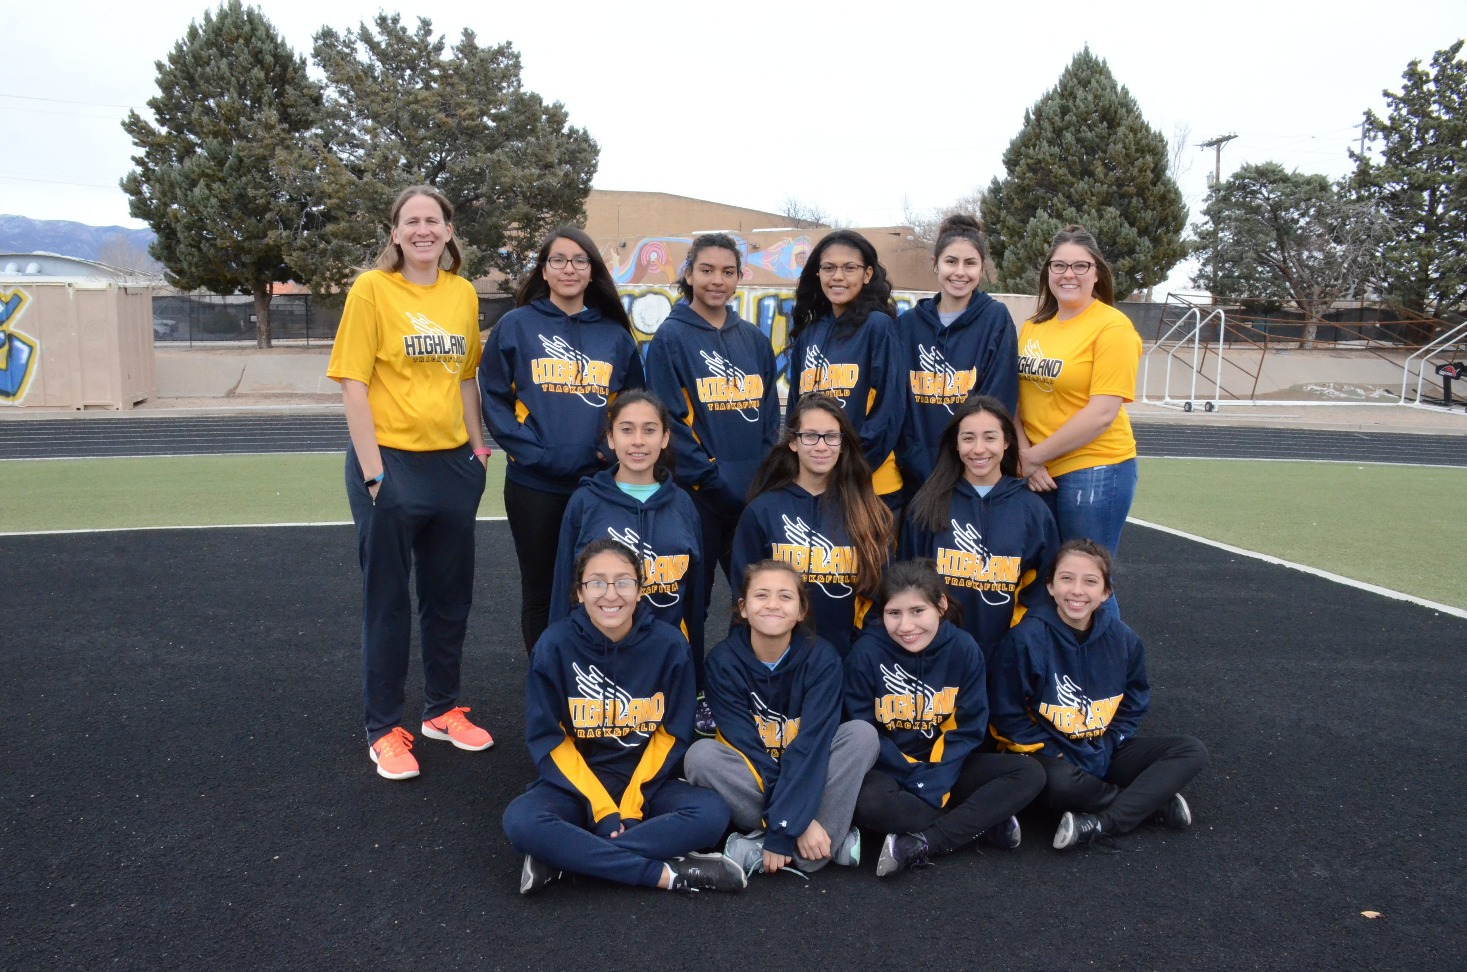 Group photo of girls track team with coach